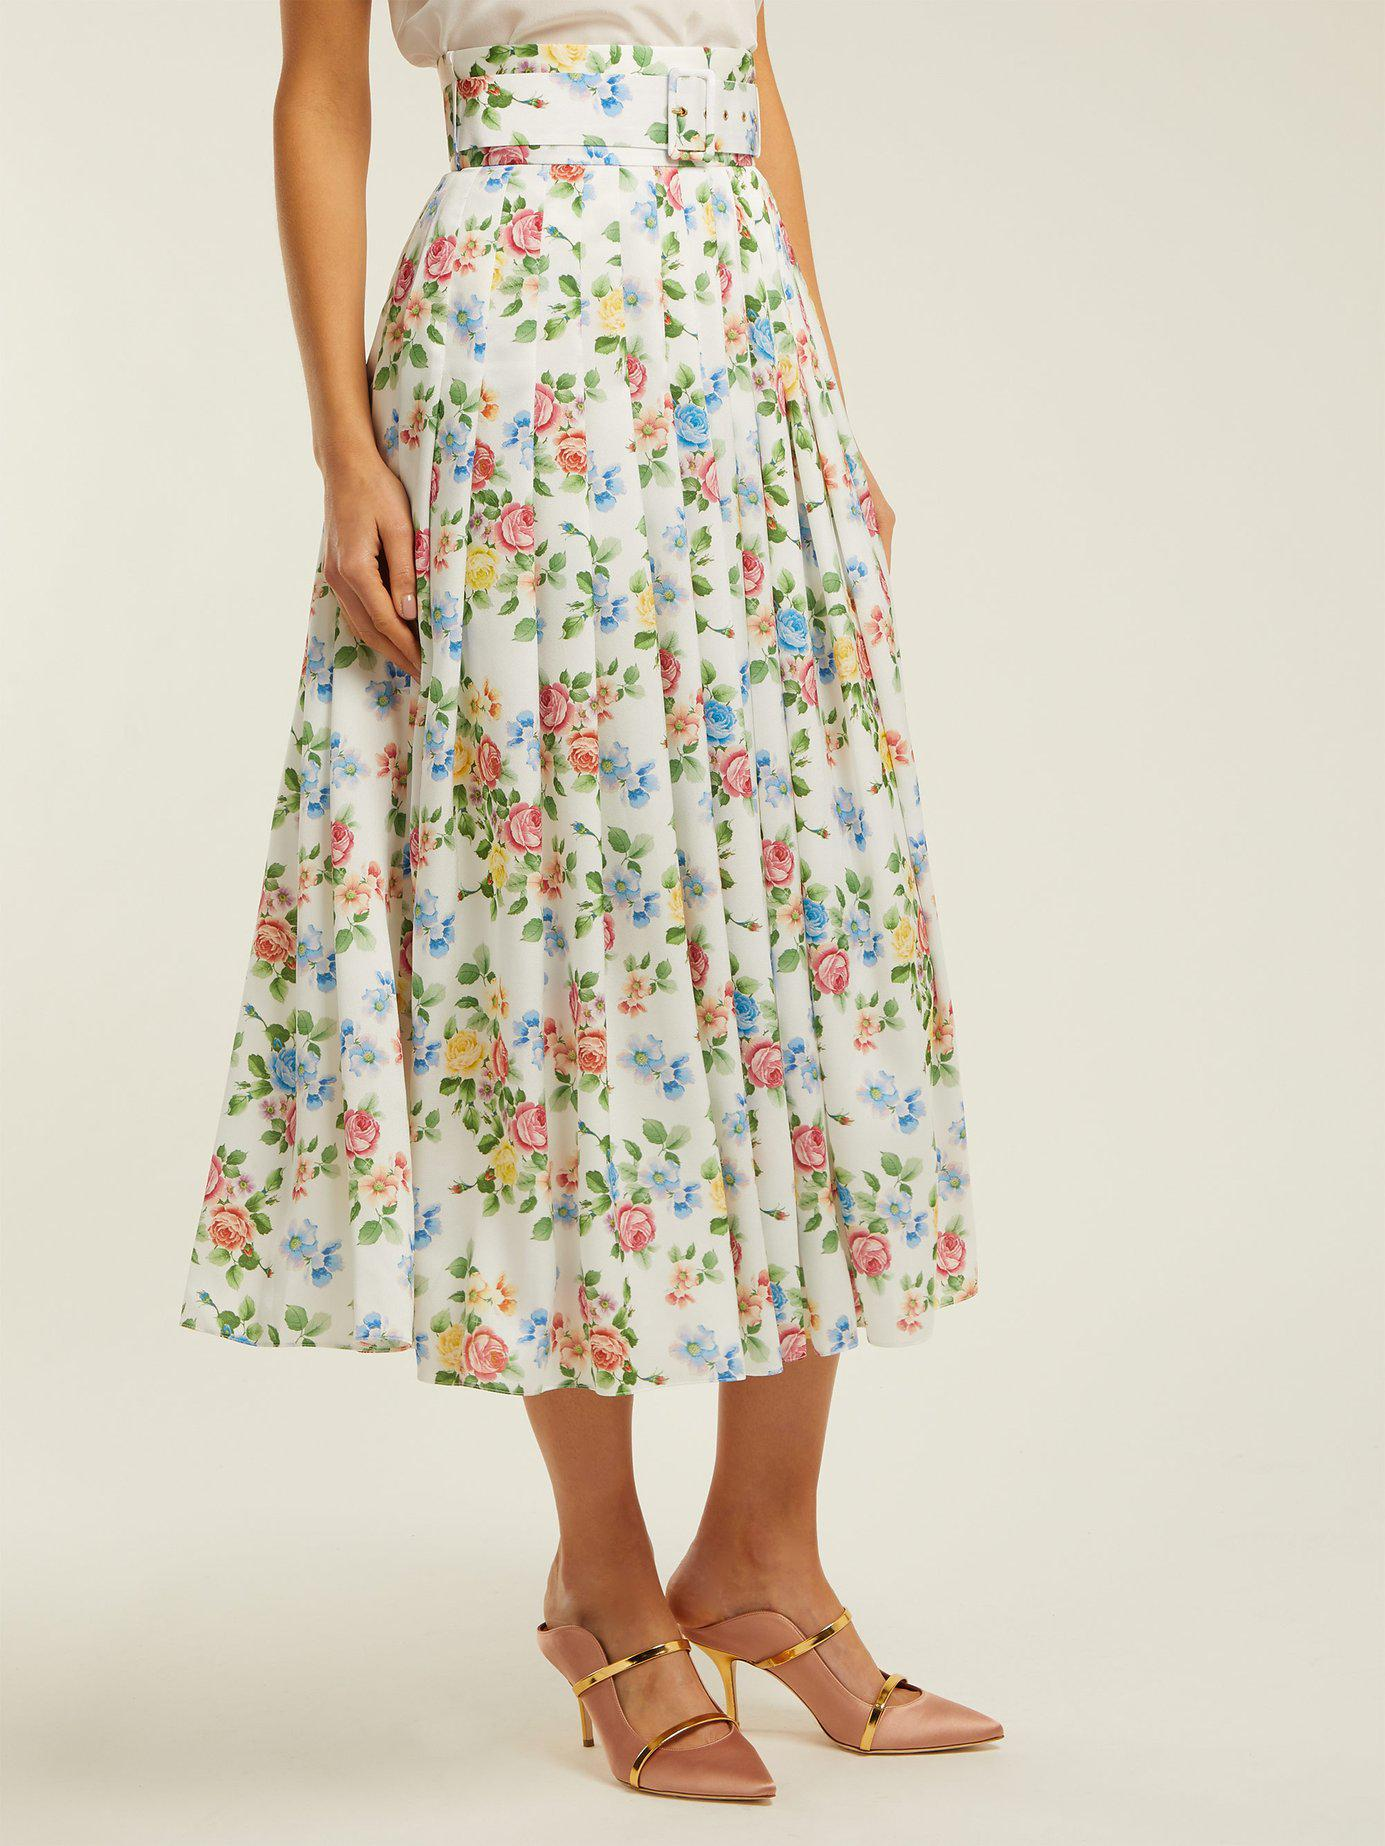 e25cb08145 Emilia Wickstead High Rise Floral Print Midi Skirt in Green - Lyst